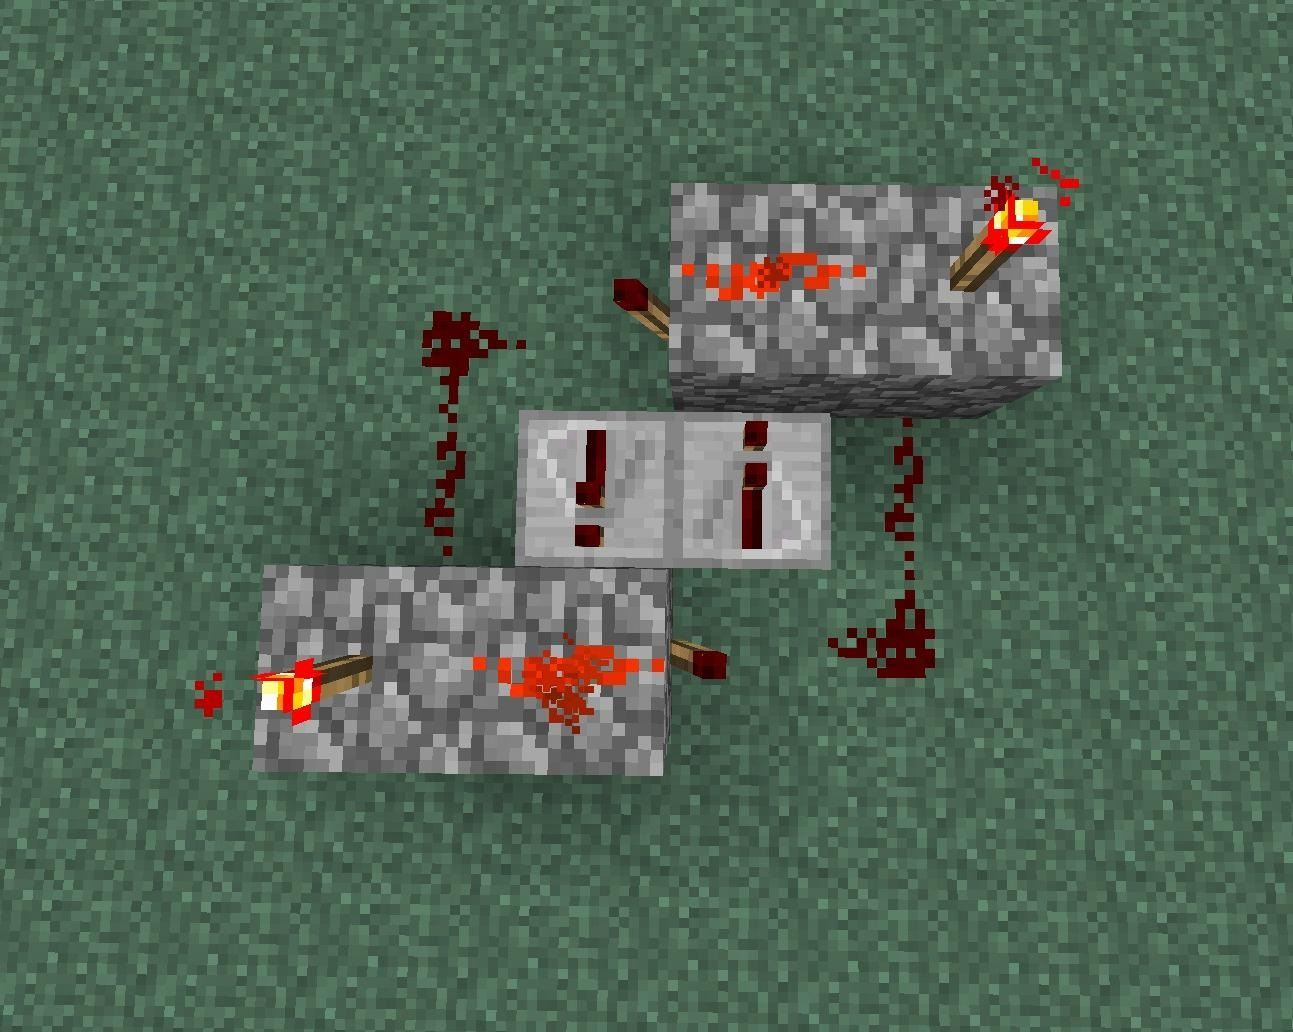 How to Send Redstone Signals Both Ways with This Two-Way Repeater